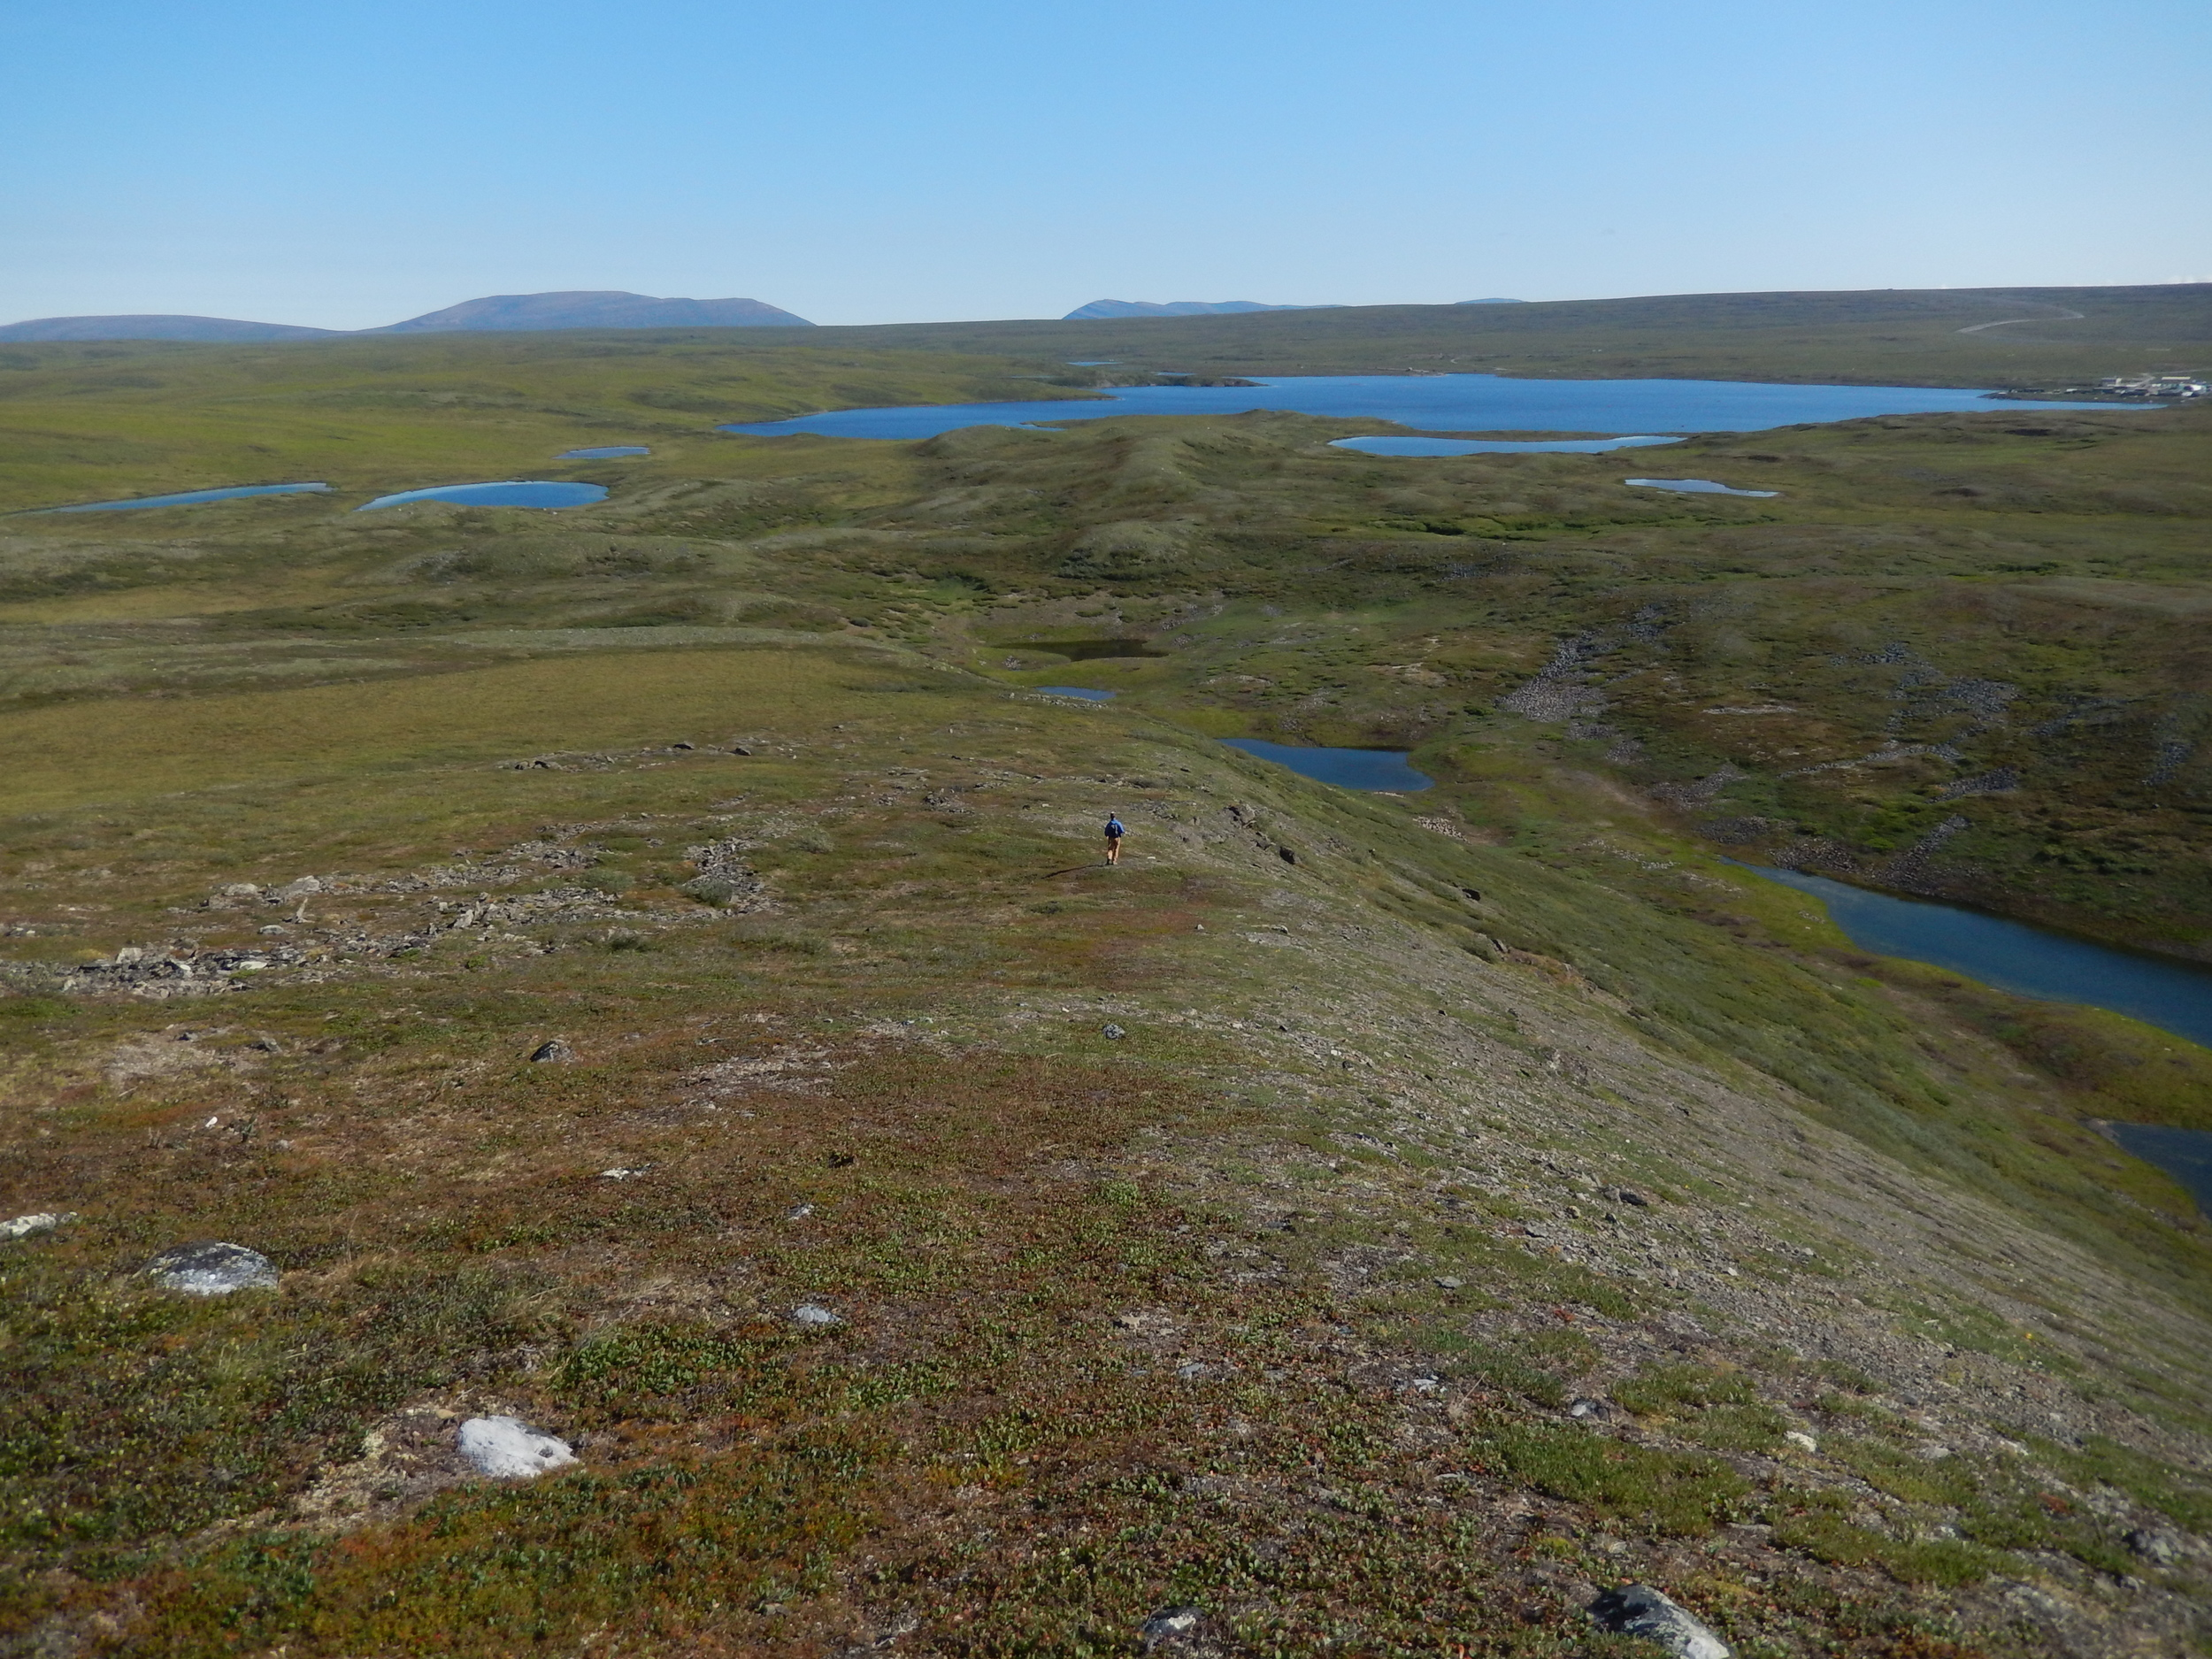 JADE MNT.  the little cluster of structure in the right hand corner is the Toolik Field Station, my home above the Arctic Circle for 3 weeks